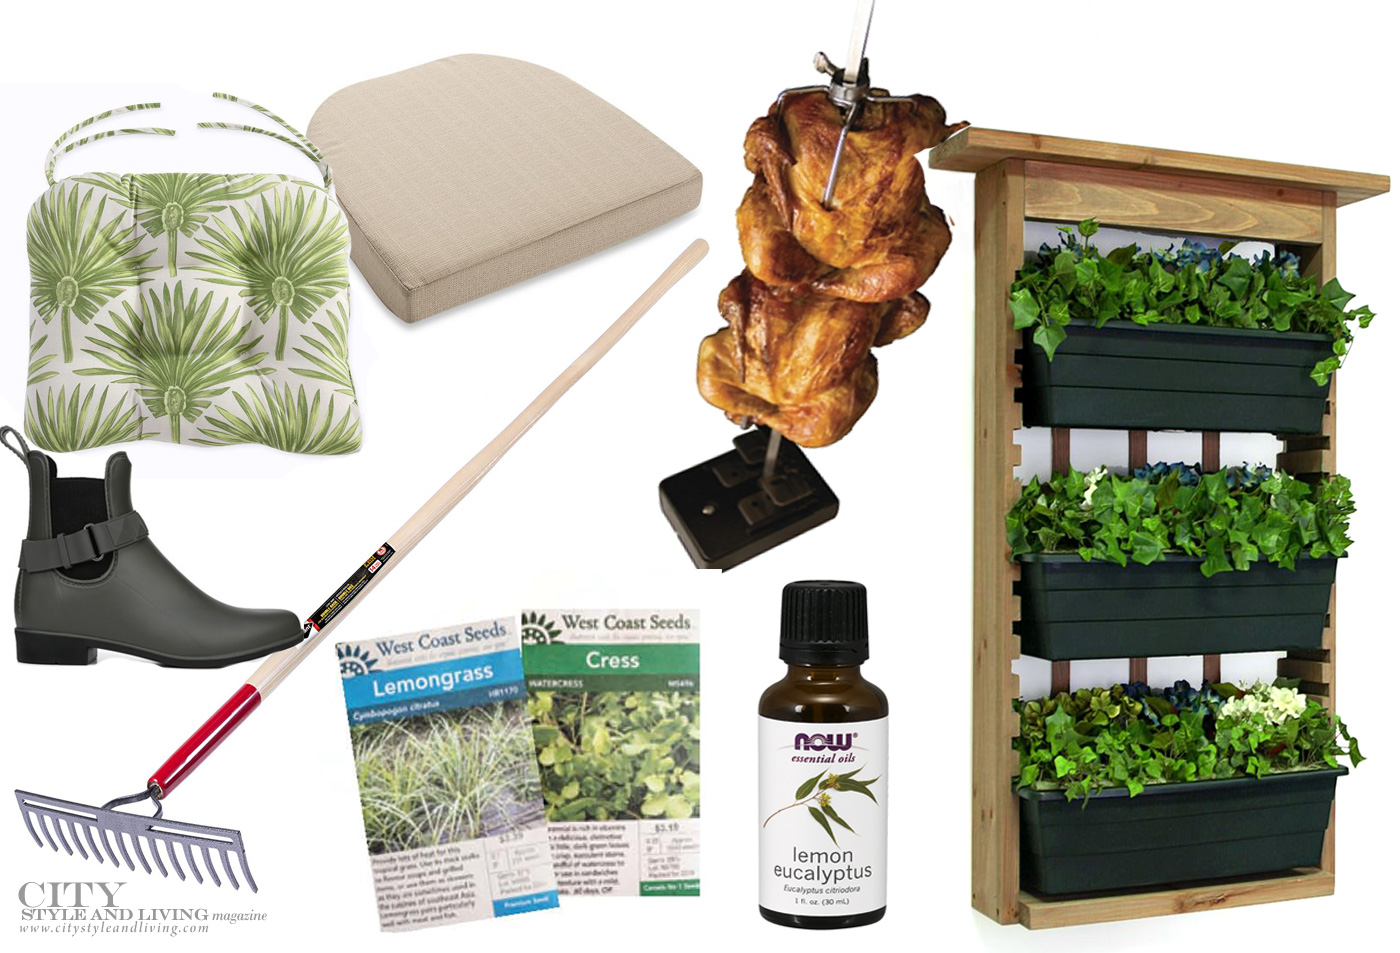 City Style and Living Magazine Summer 2019 create the perfect outdoor space tools